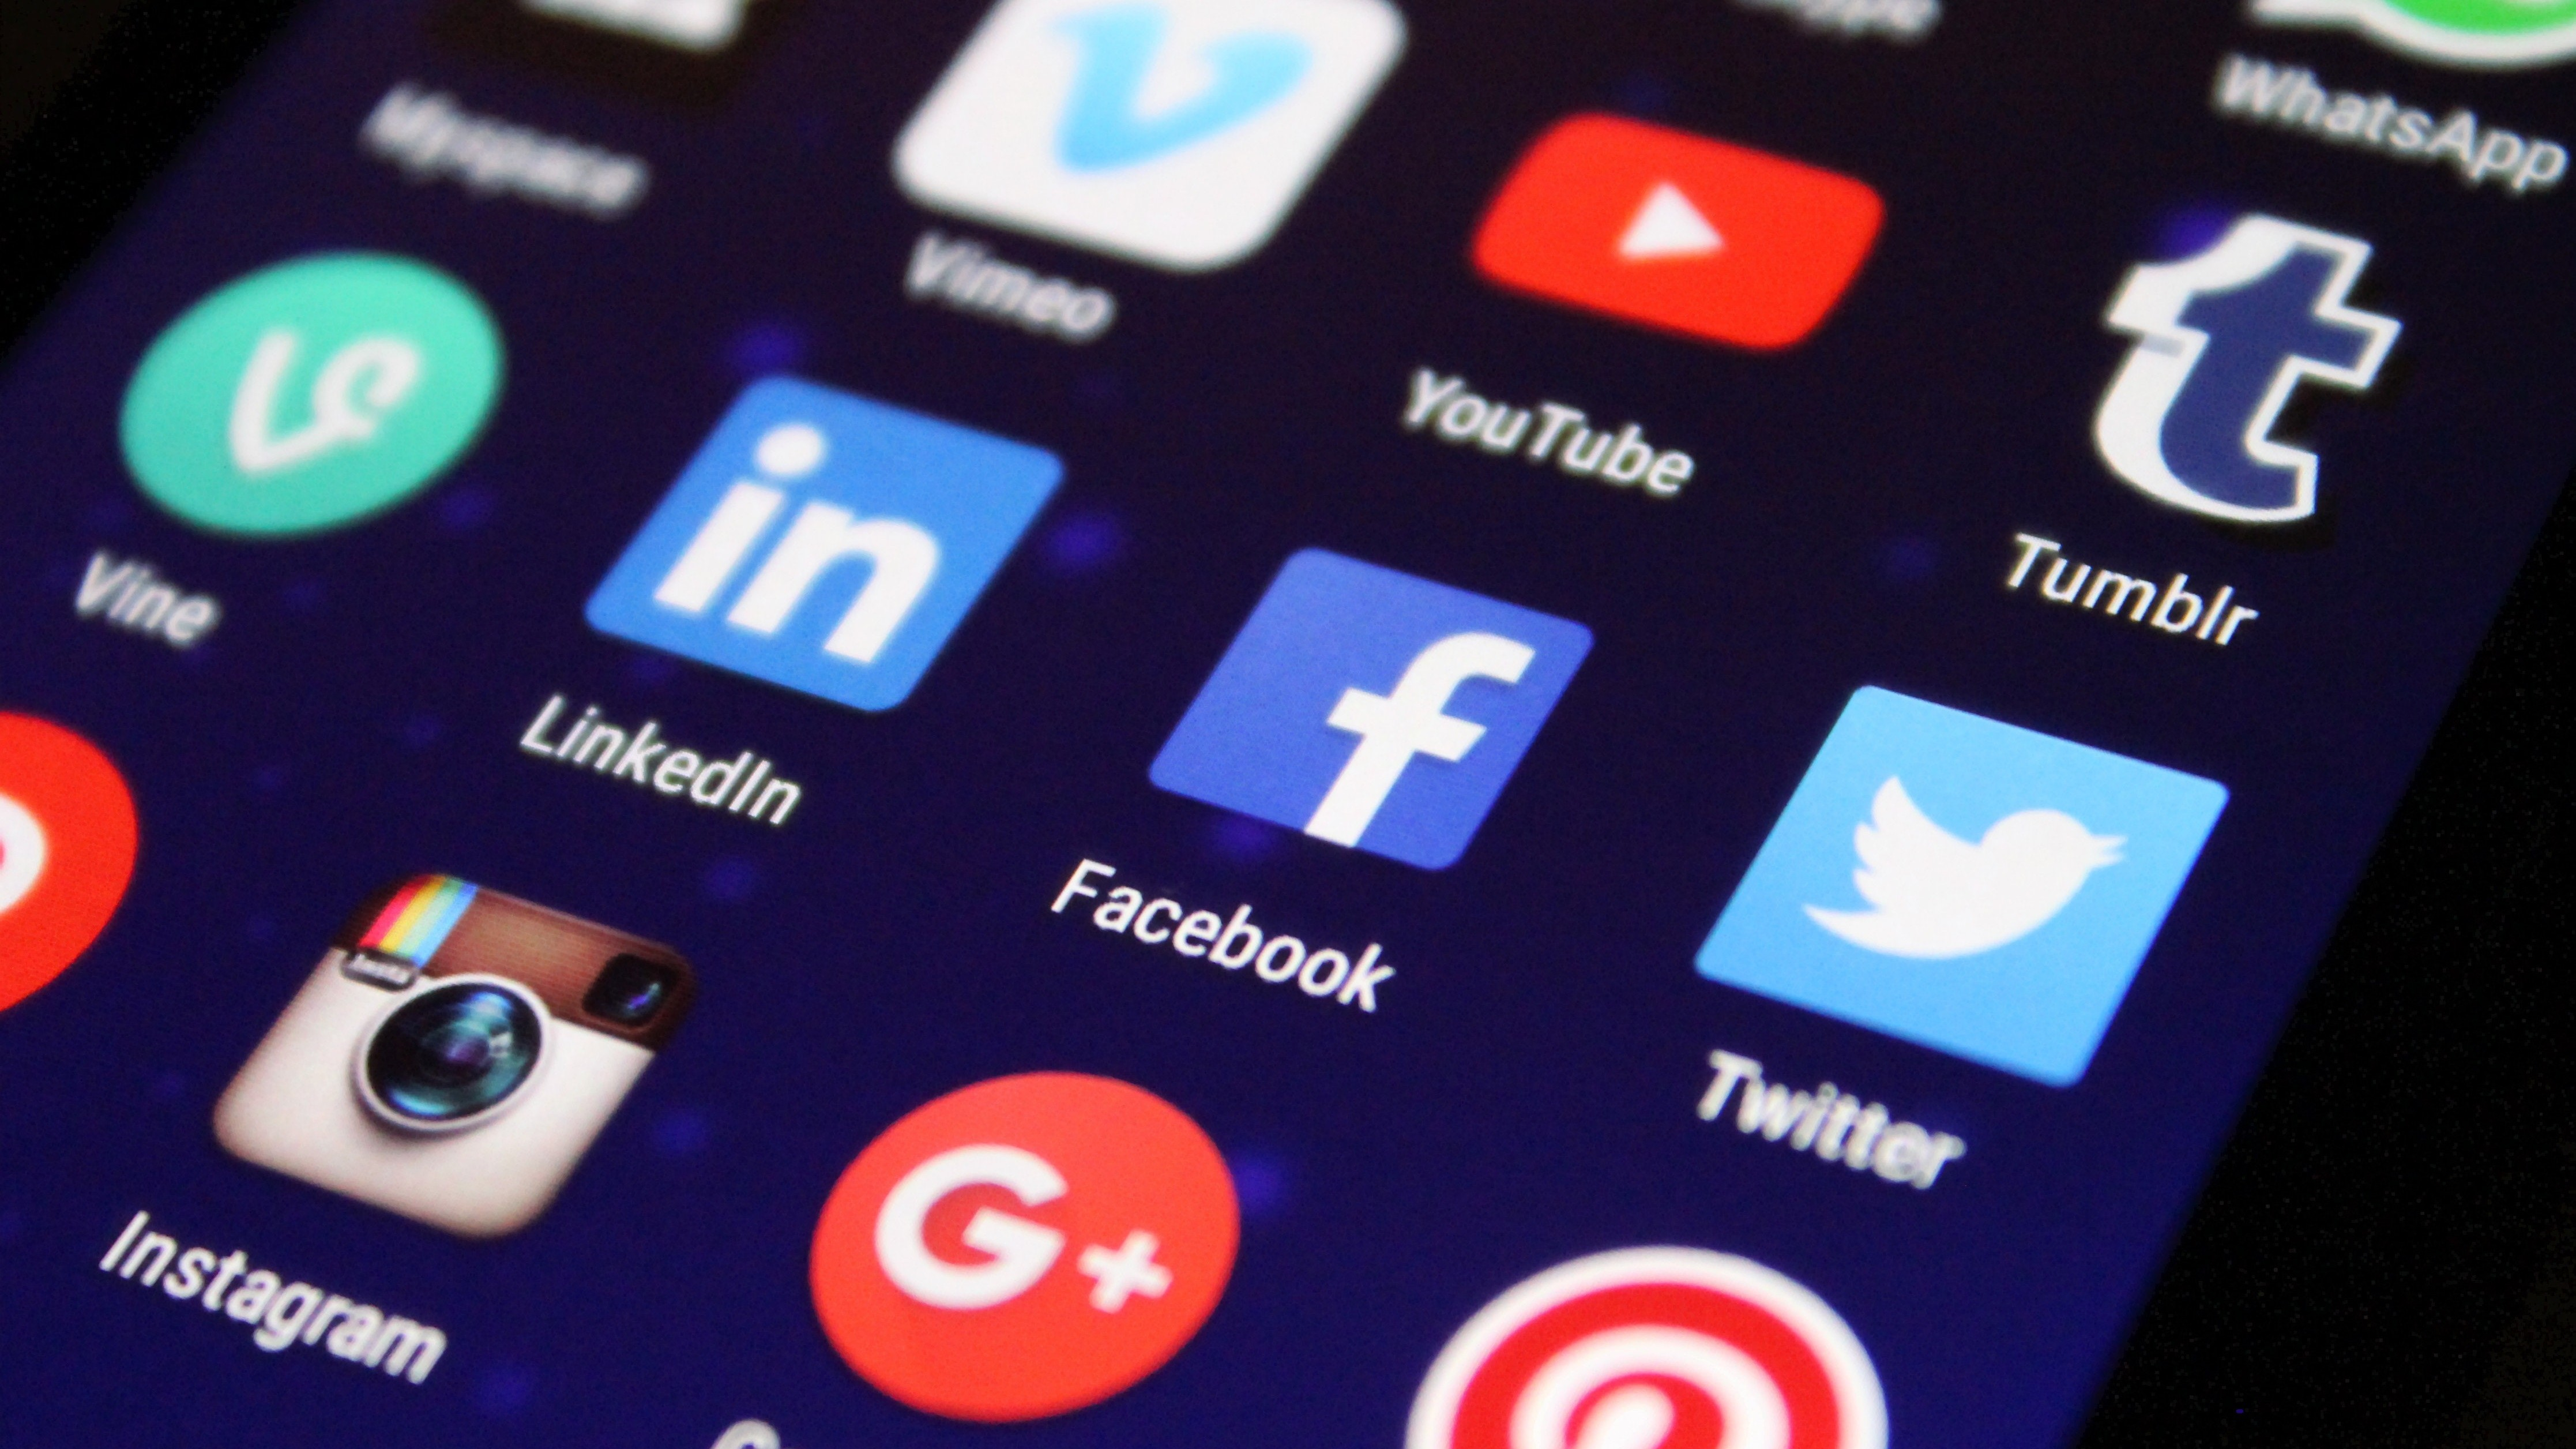 Facebook, Twitter on collision course with Indian govt over new social media norms